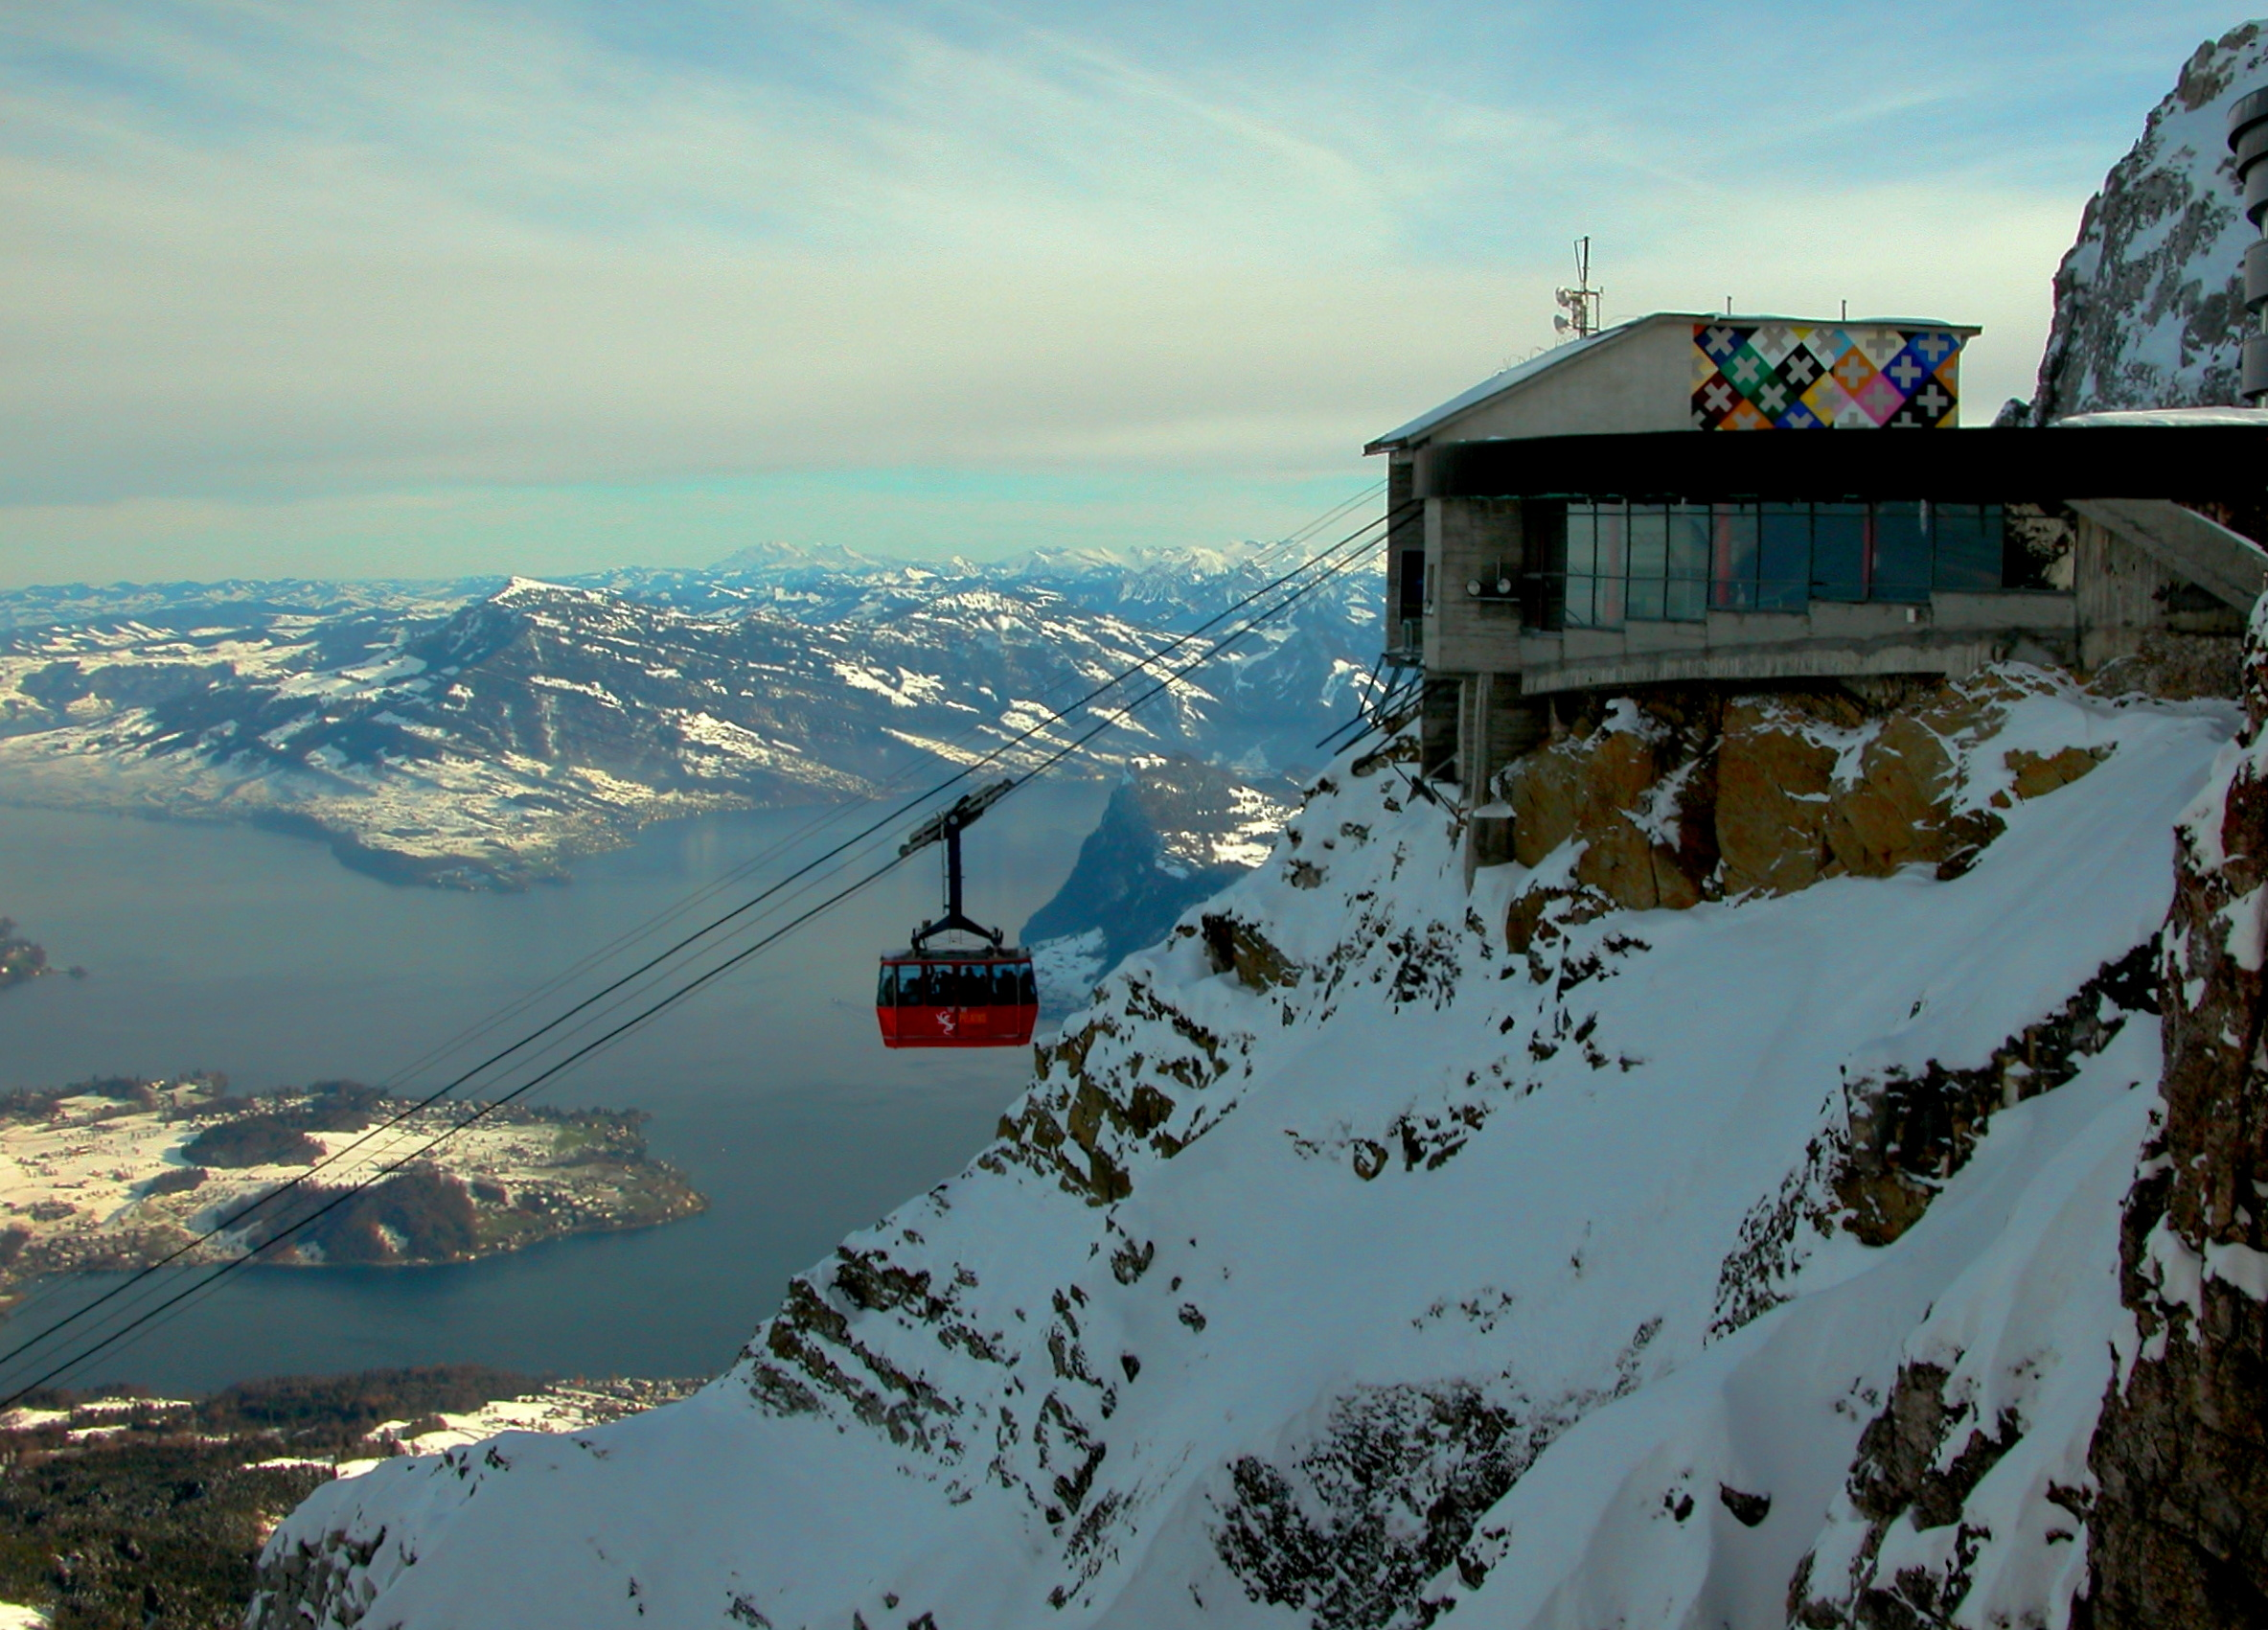 Mt Pilatus Cable car